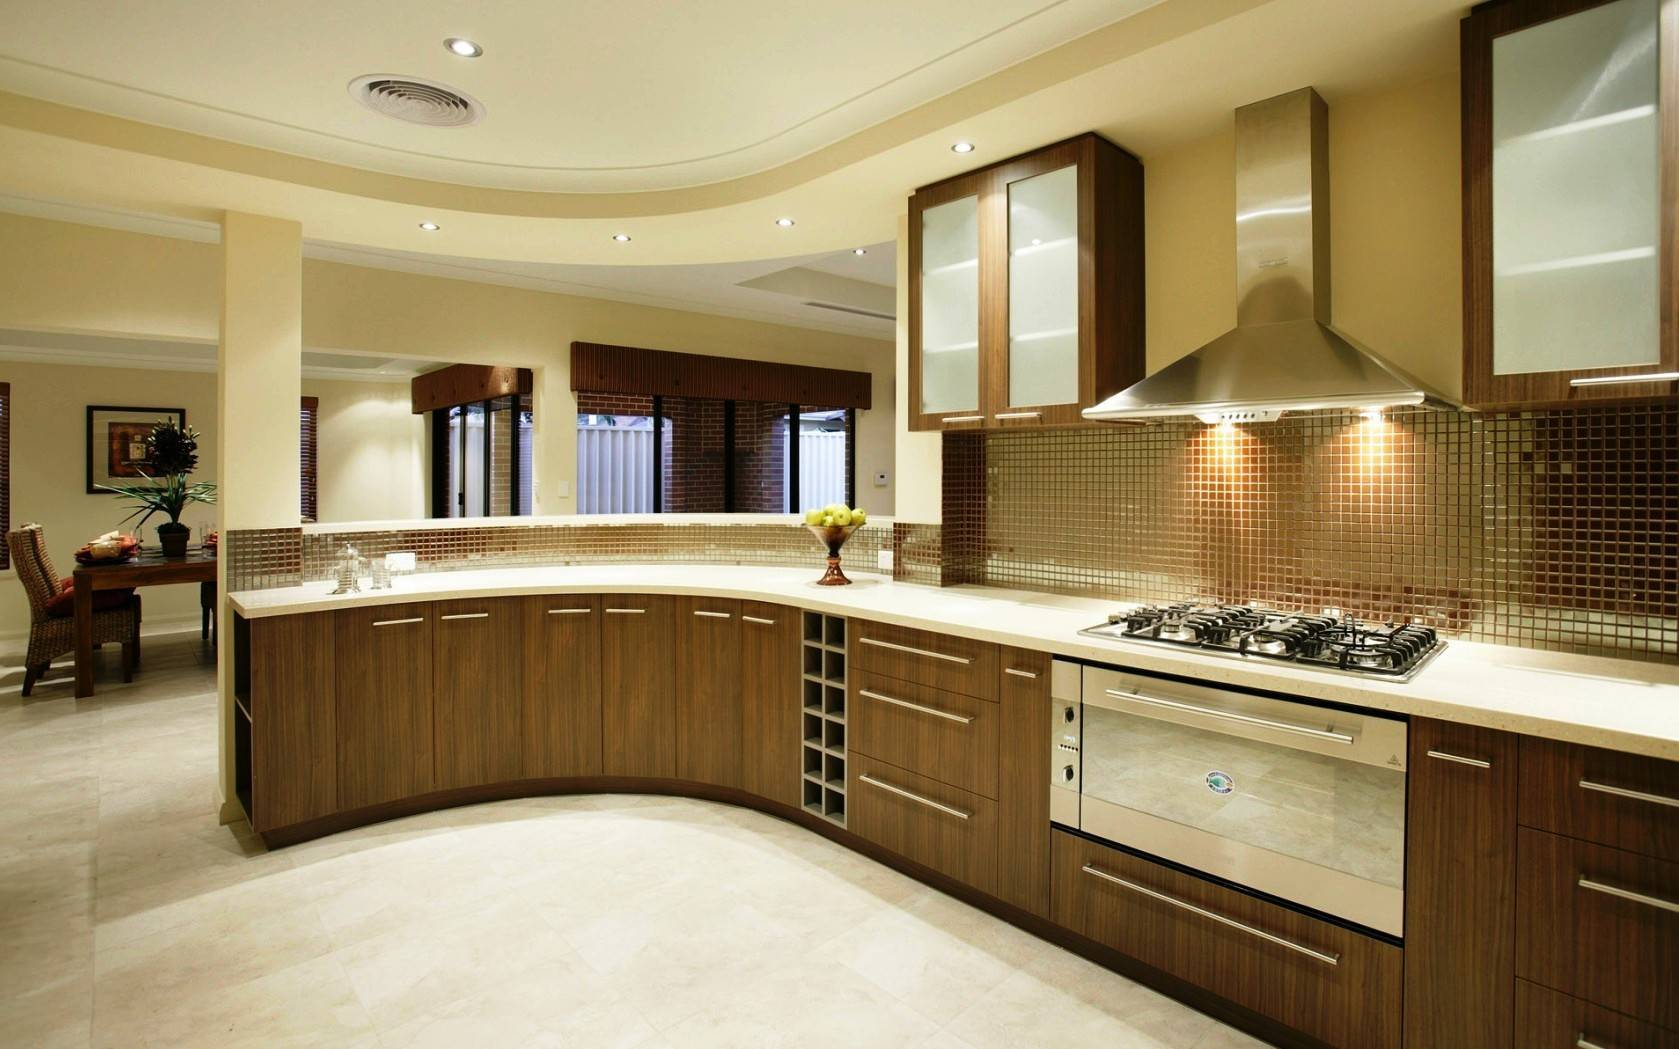 Tiny Kitchen Design Images 30 Awesome Modular Kitchen Designs